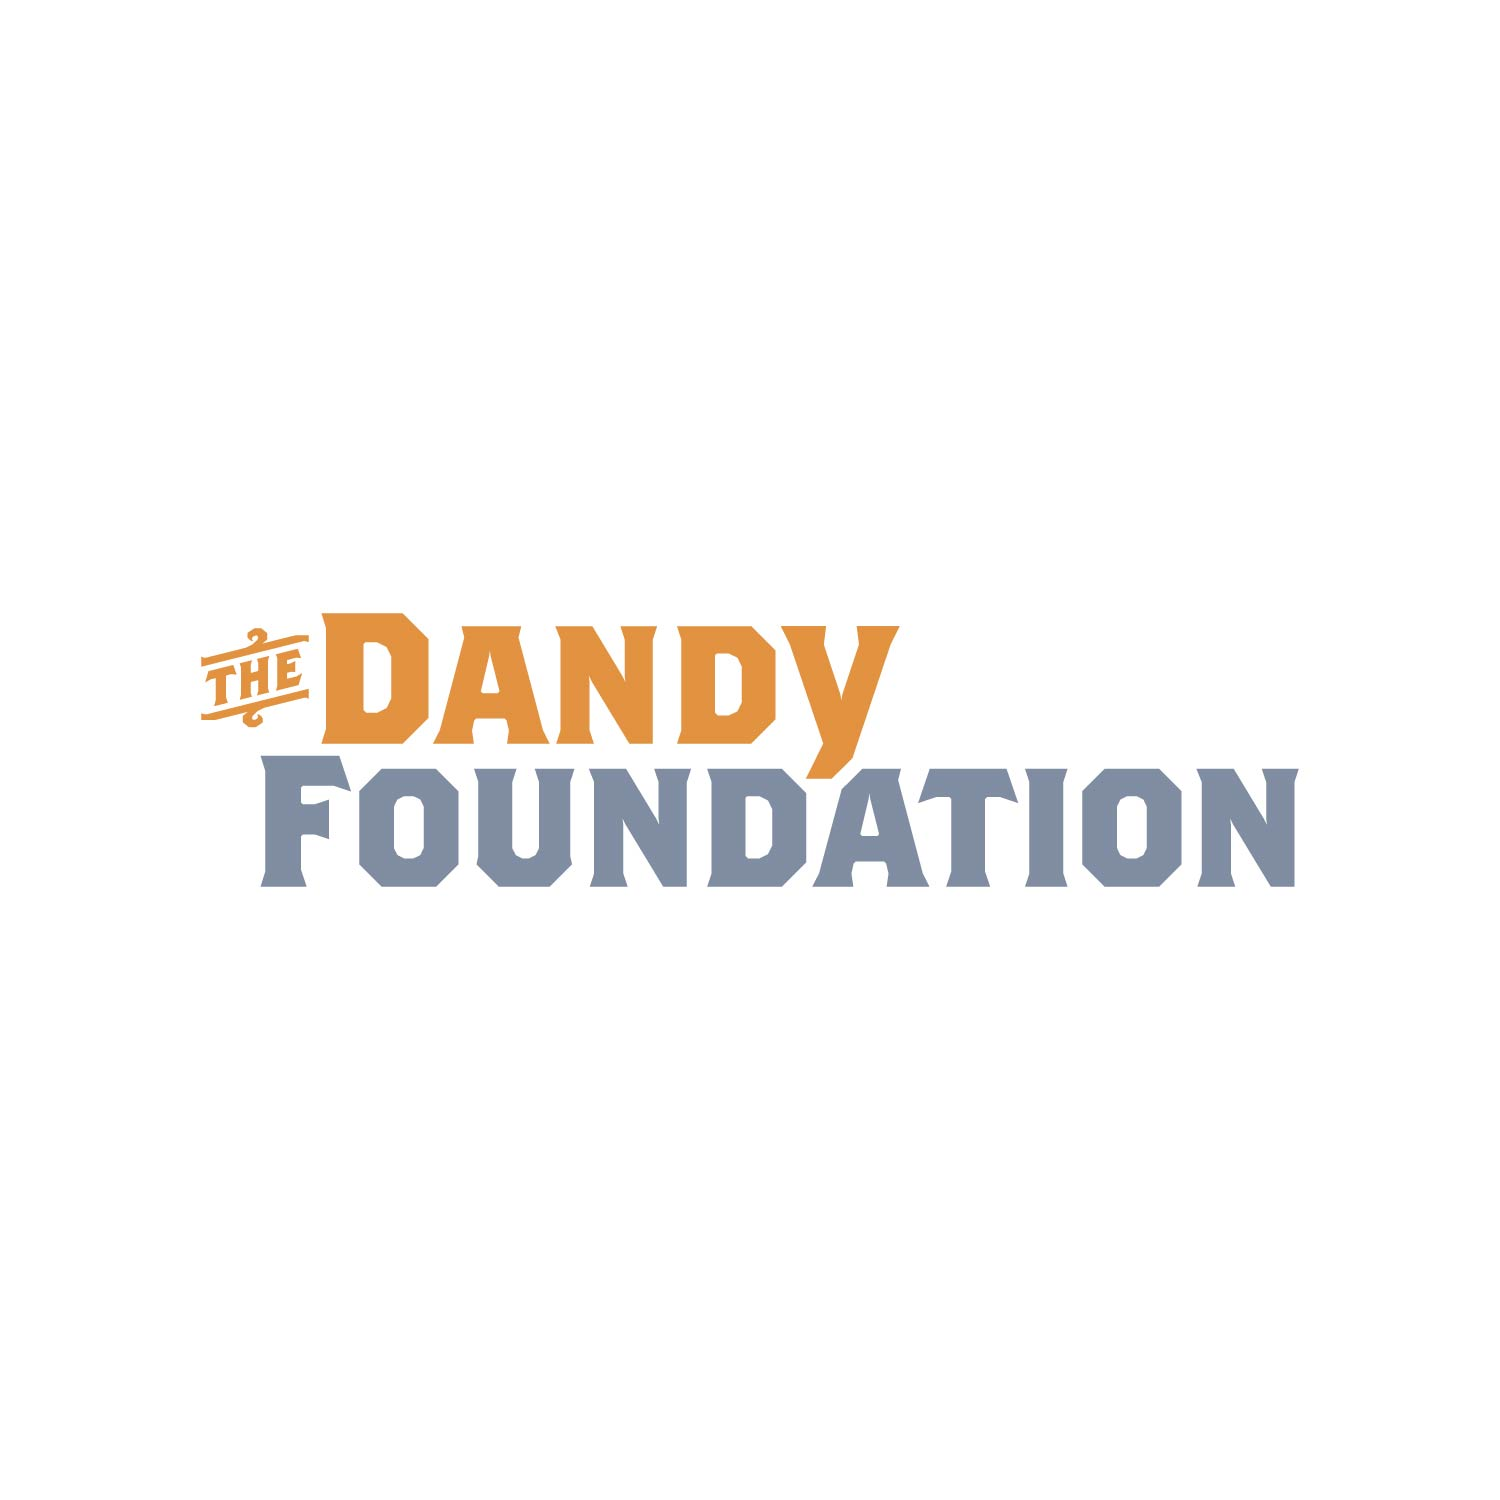 The_Dandy_Foundation